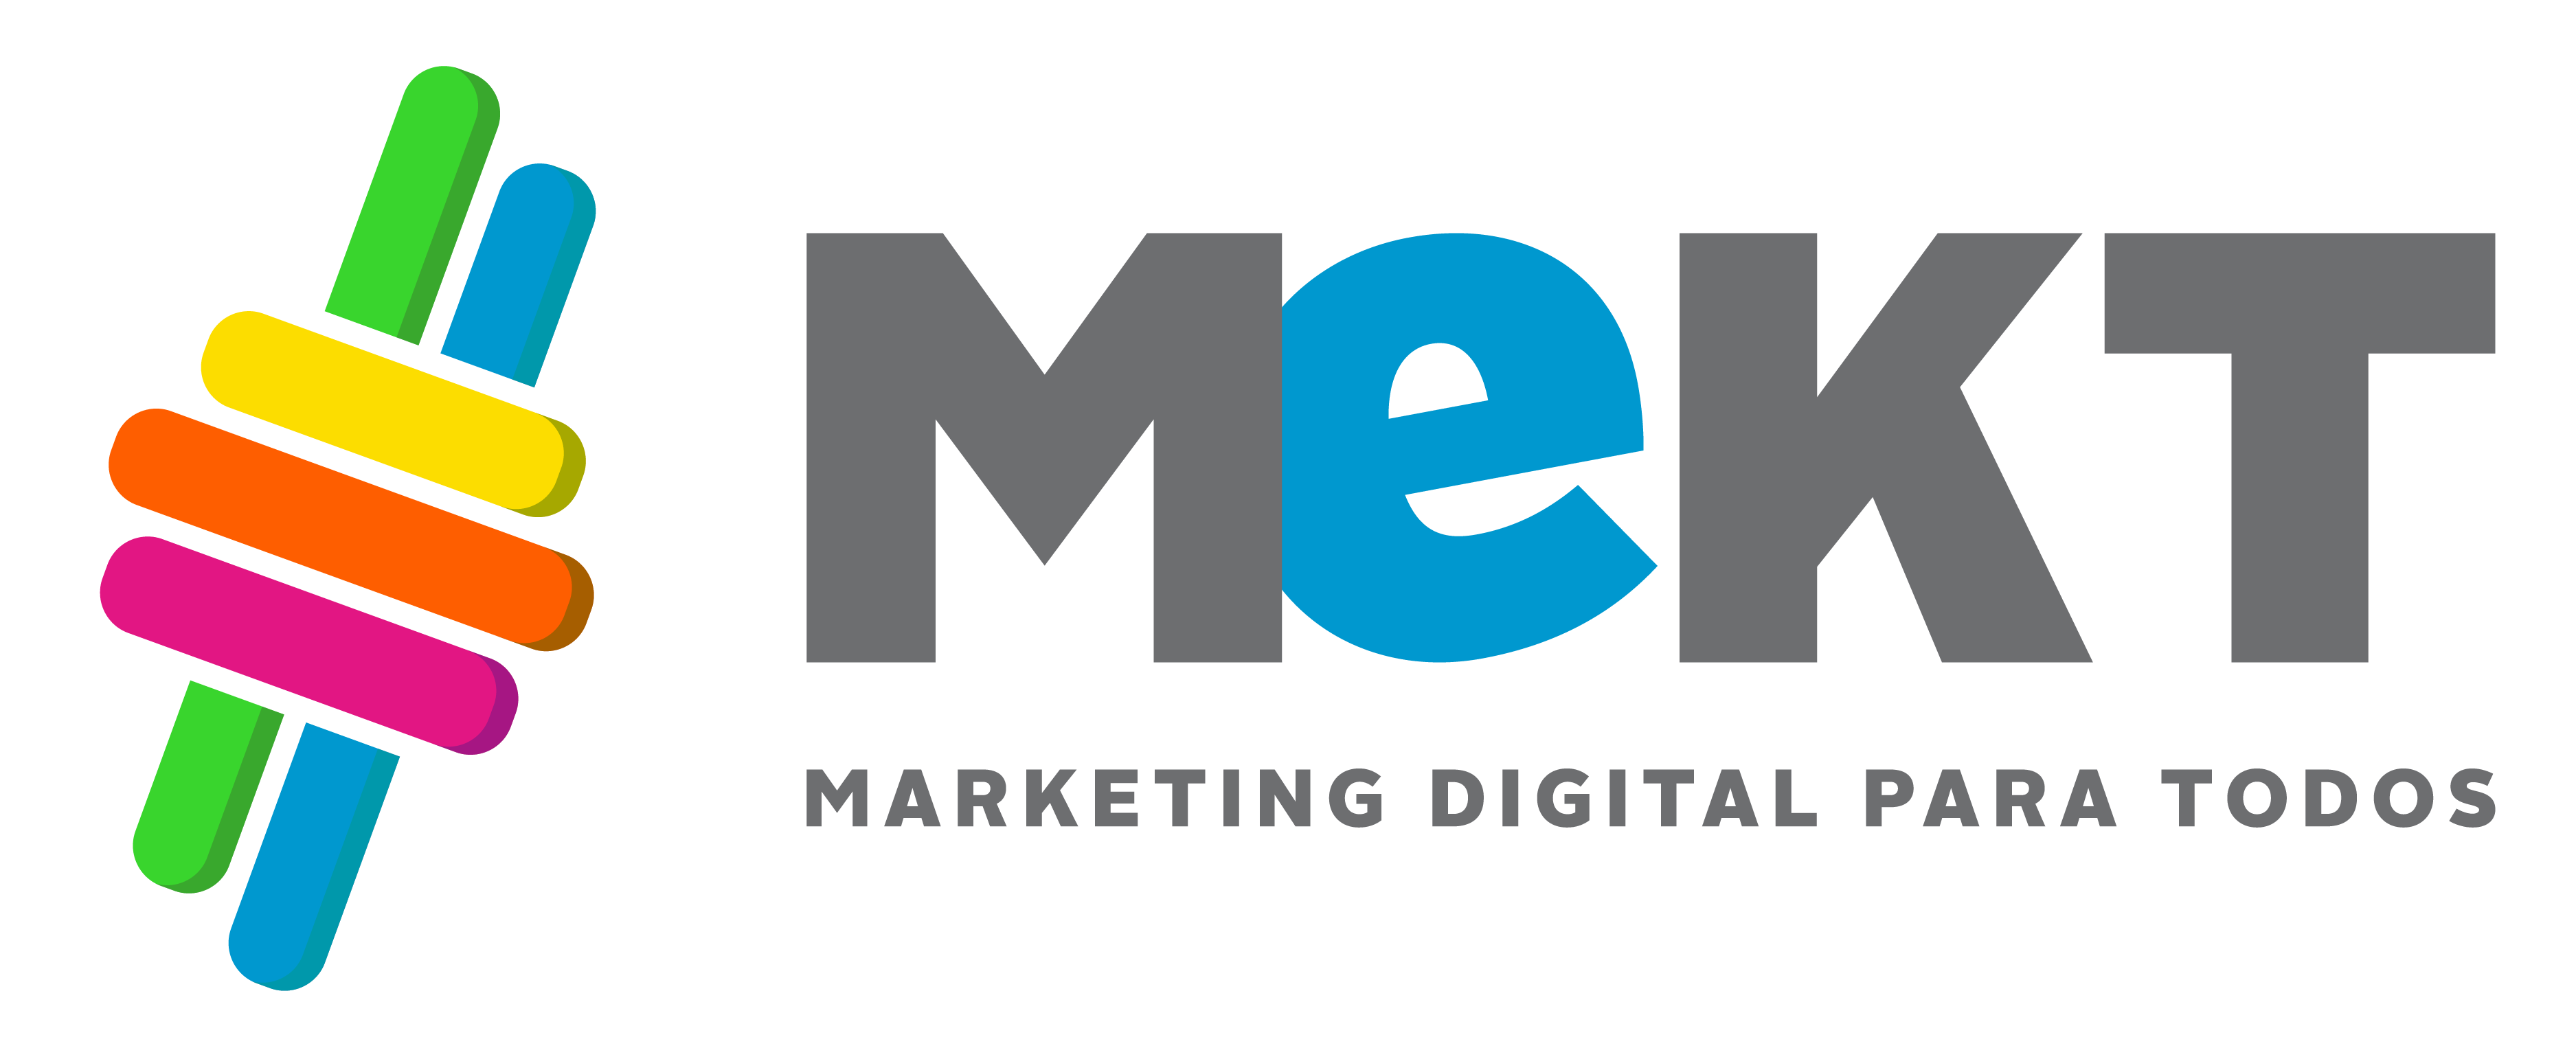 Mekt | Marketing digital | Creación de vídeos